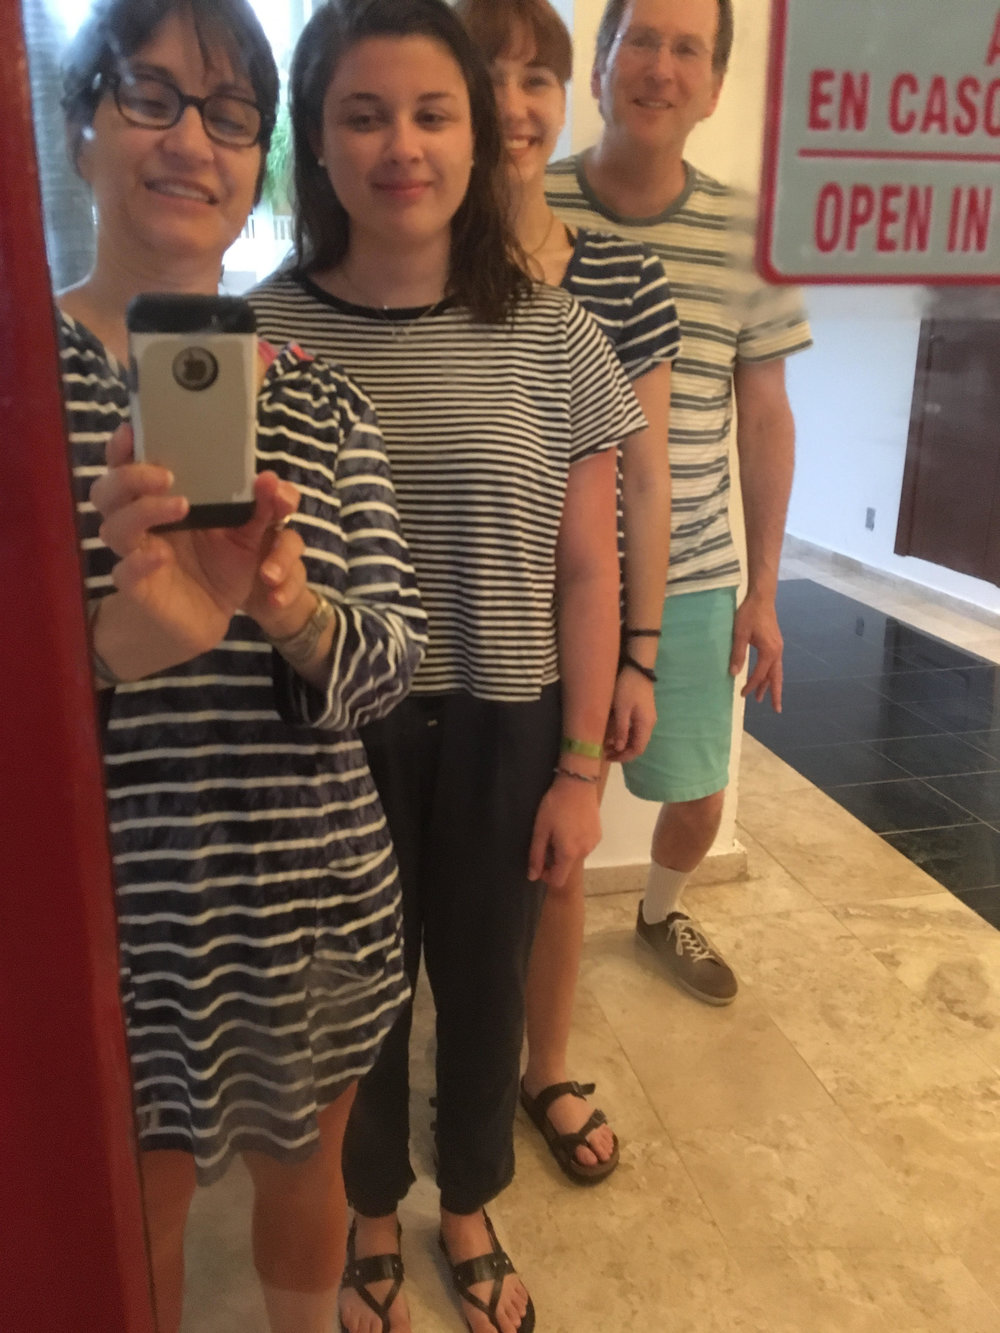 Stripe family in Mexico.jpg